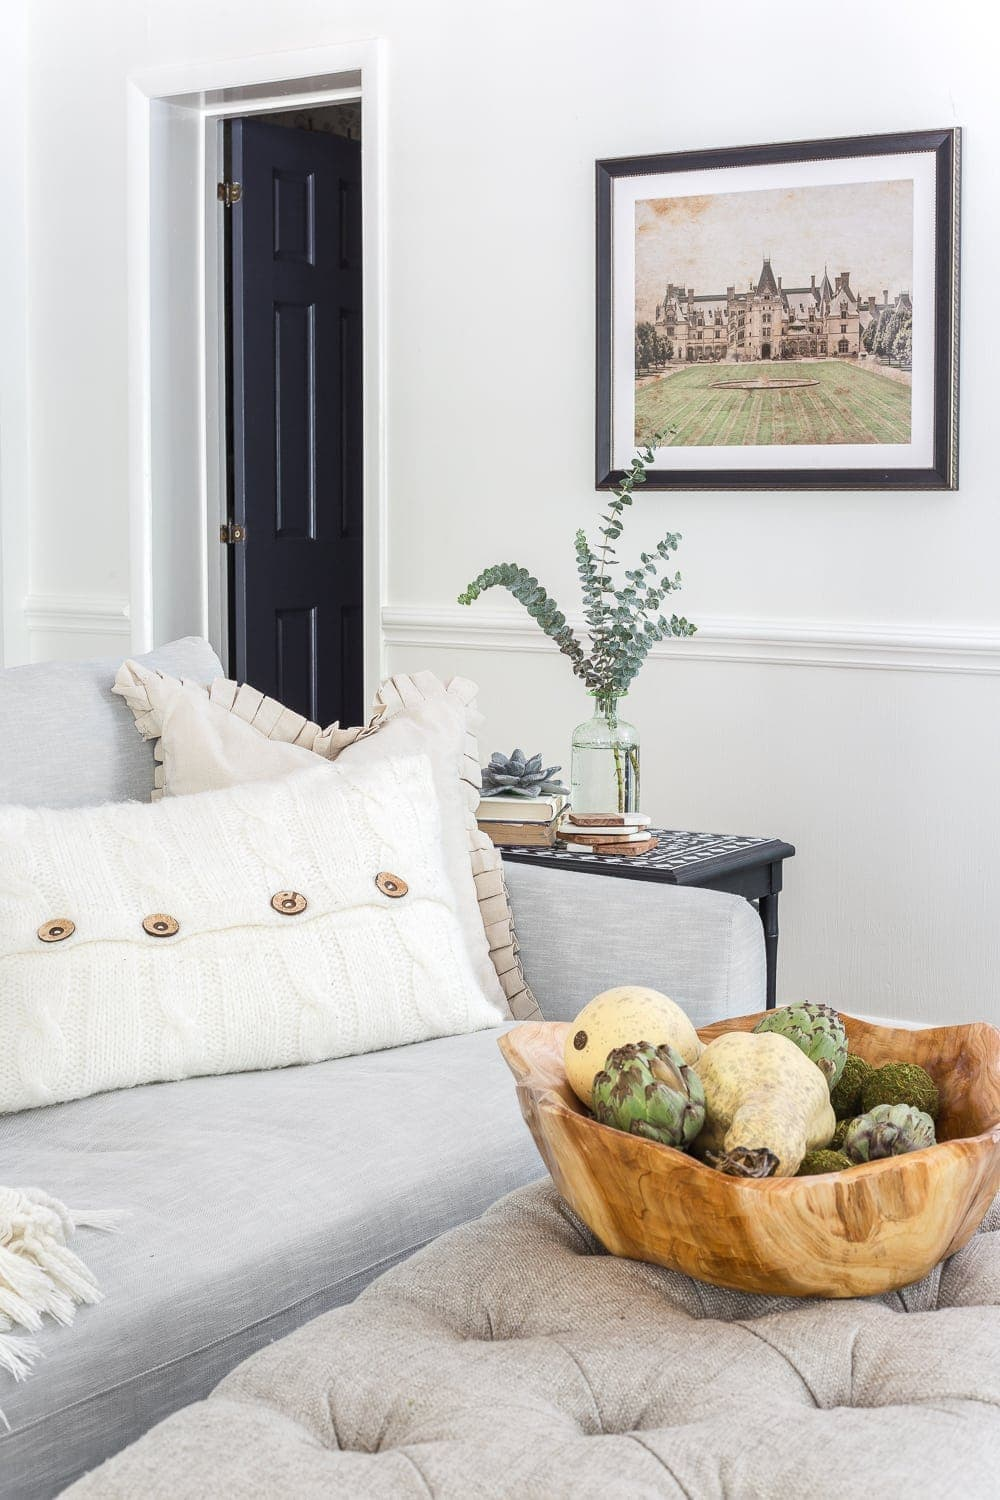 12 of the most common decorating mistakes most people make when choosing paint colors, furniture layouts, and styling, and tips on how to avoid them. #decorating #decoratingmistakes #decoratingtips Hang artwork at eye level.